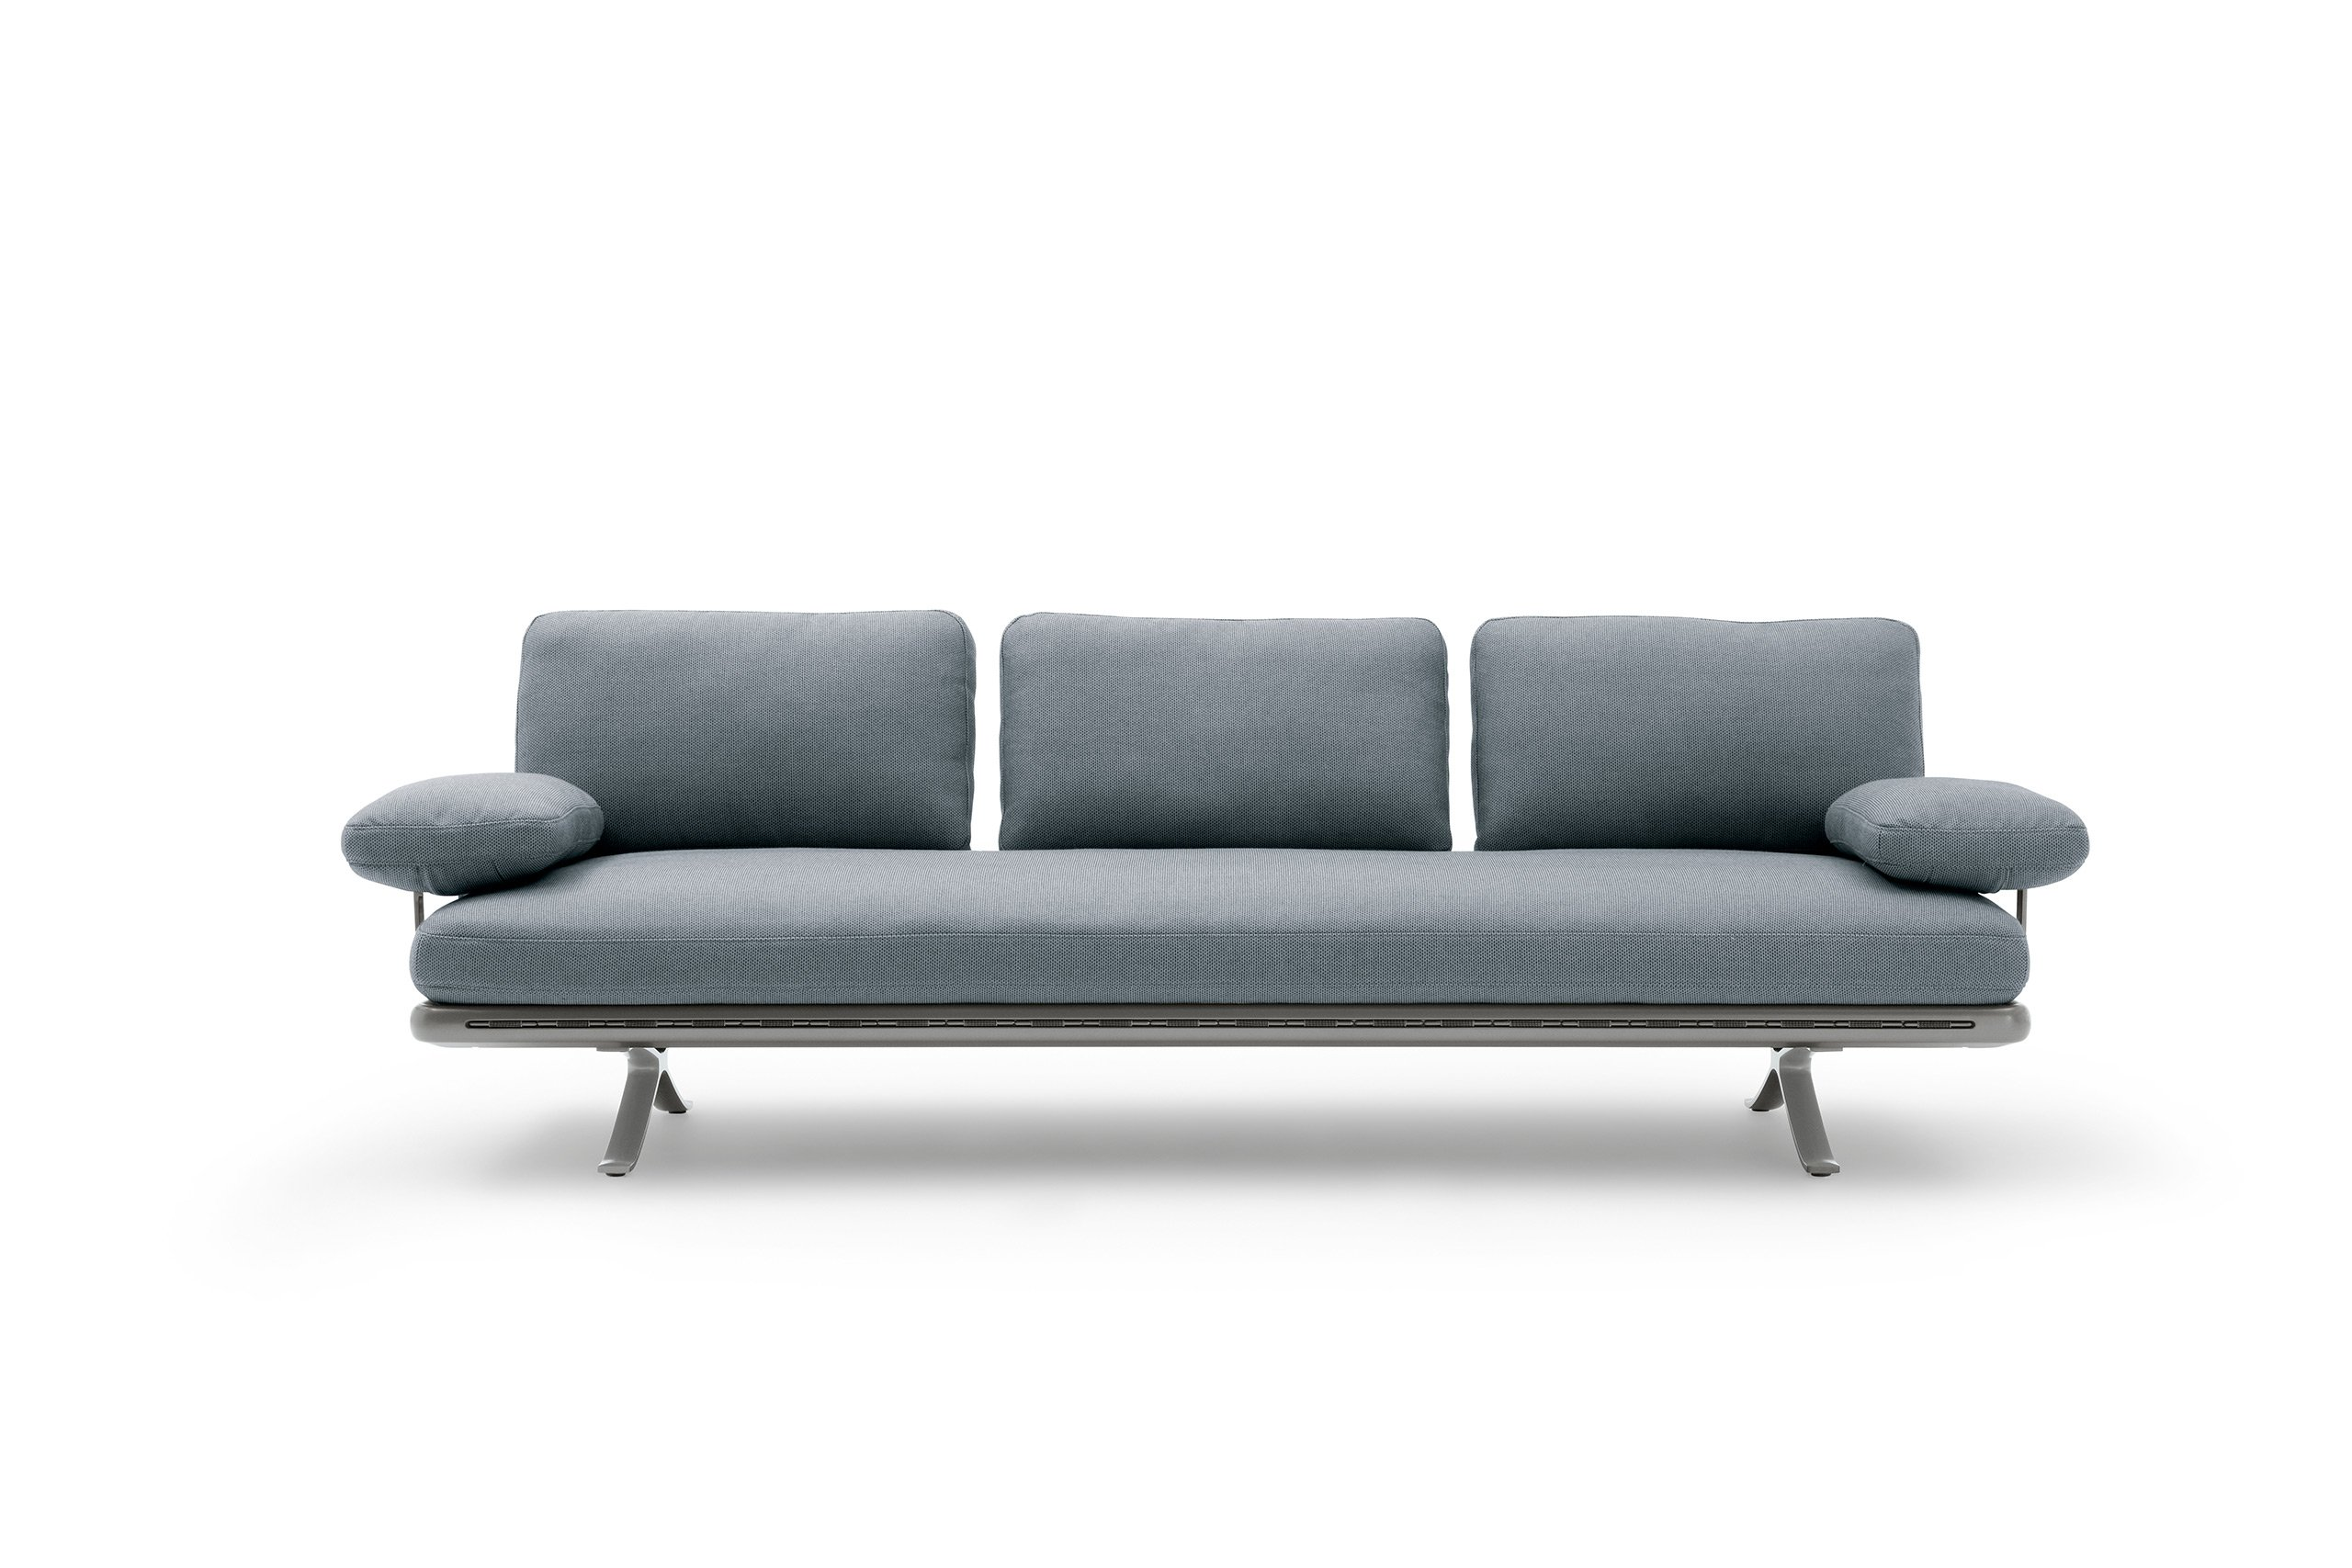 The new outdoor collection from Rolf Benz: Rolf Benz YOKO. At home – outside.